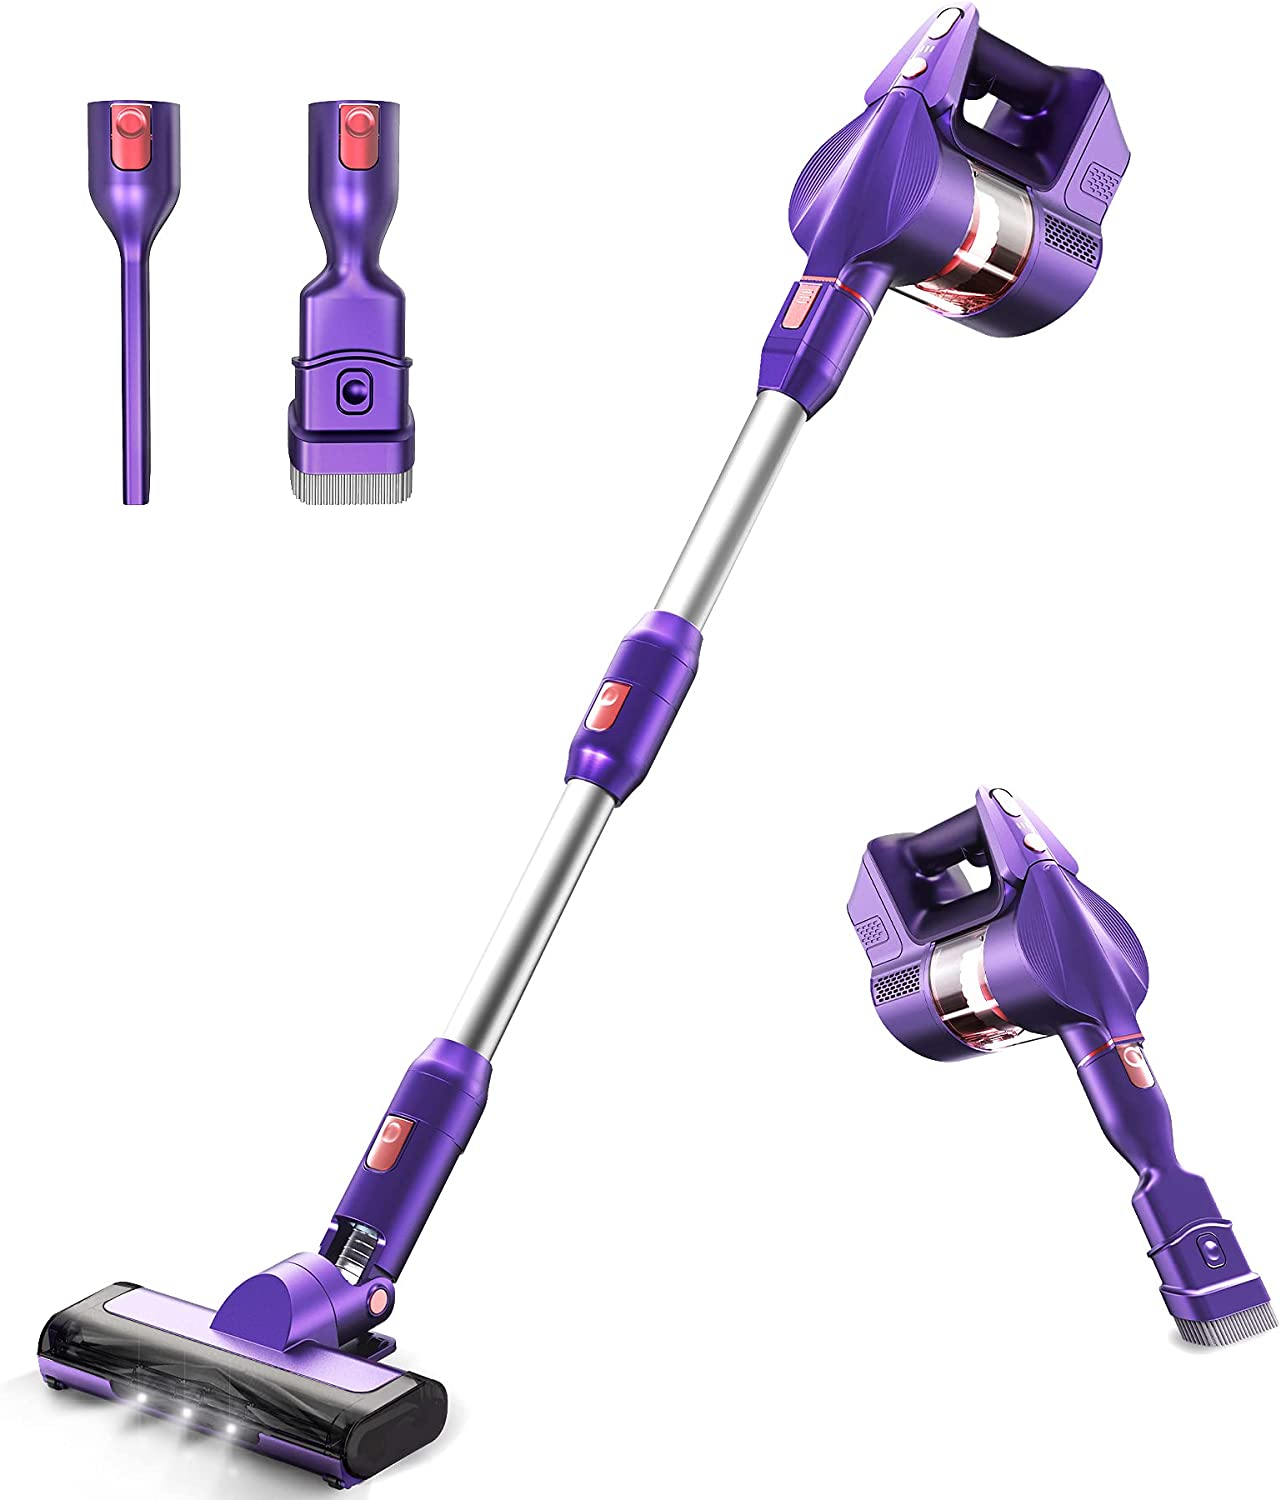 Cordless Vacuum Cleaner 26Kpa Powerful Suction Stick Vacuum KOXXBASS Lightweight 3 Speed Modes Vacuum Cleaner with LED Headlights Detachable Battery for Home Hard Floor Carpet Car Pet Hair Furniture